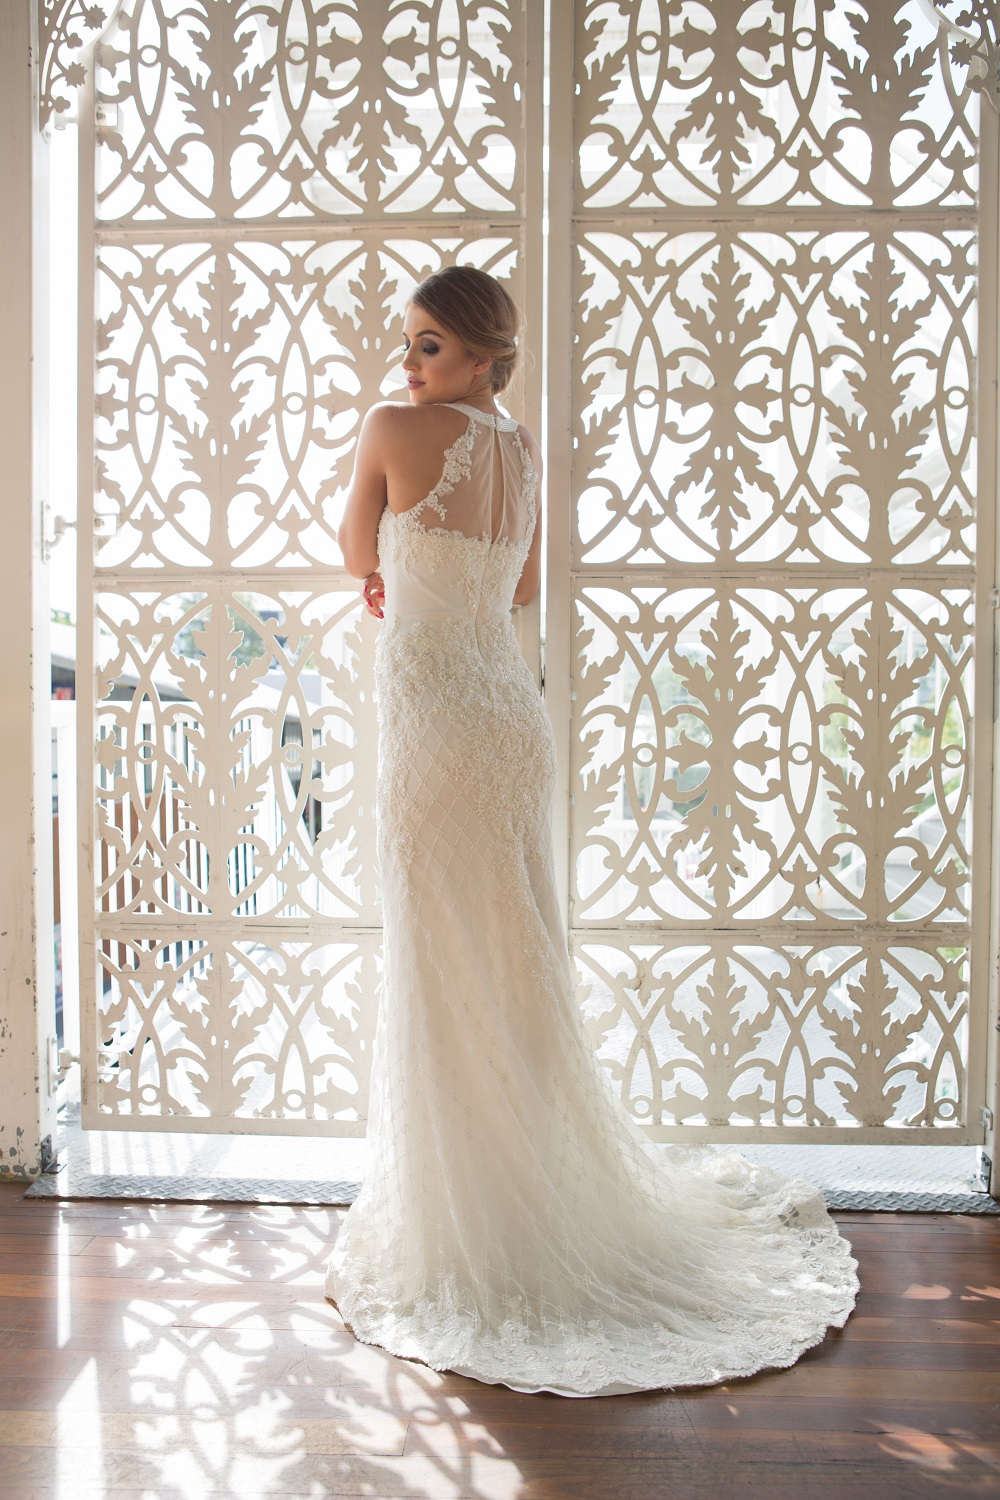 Clarissa beaded high neck wedding dress